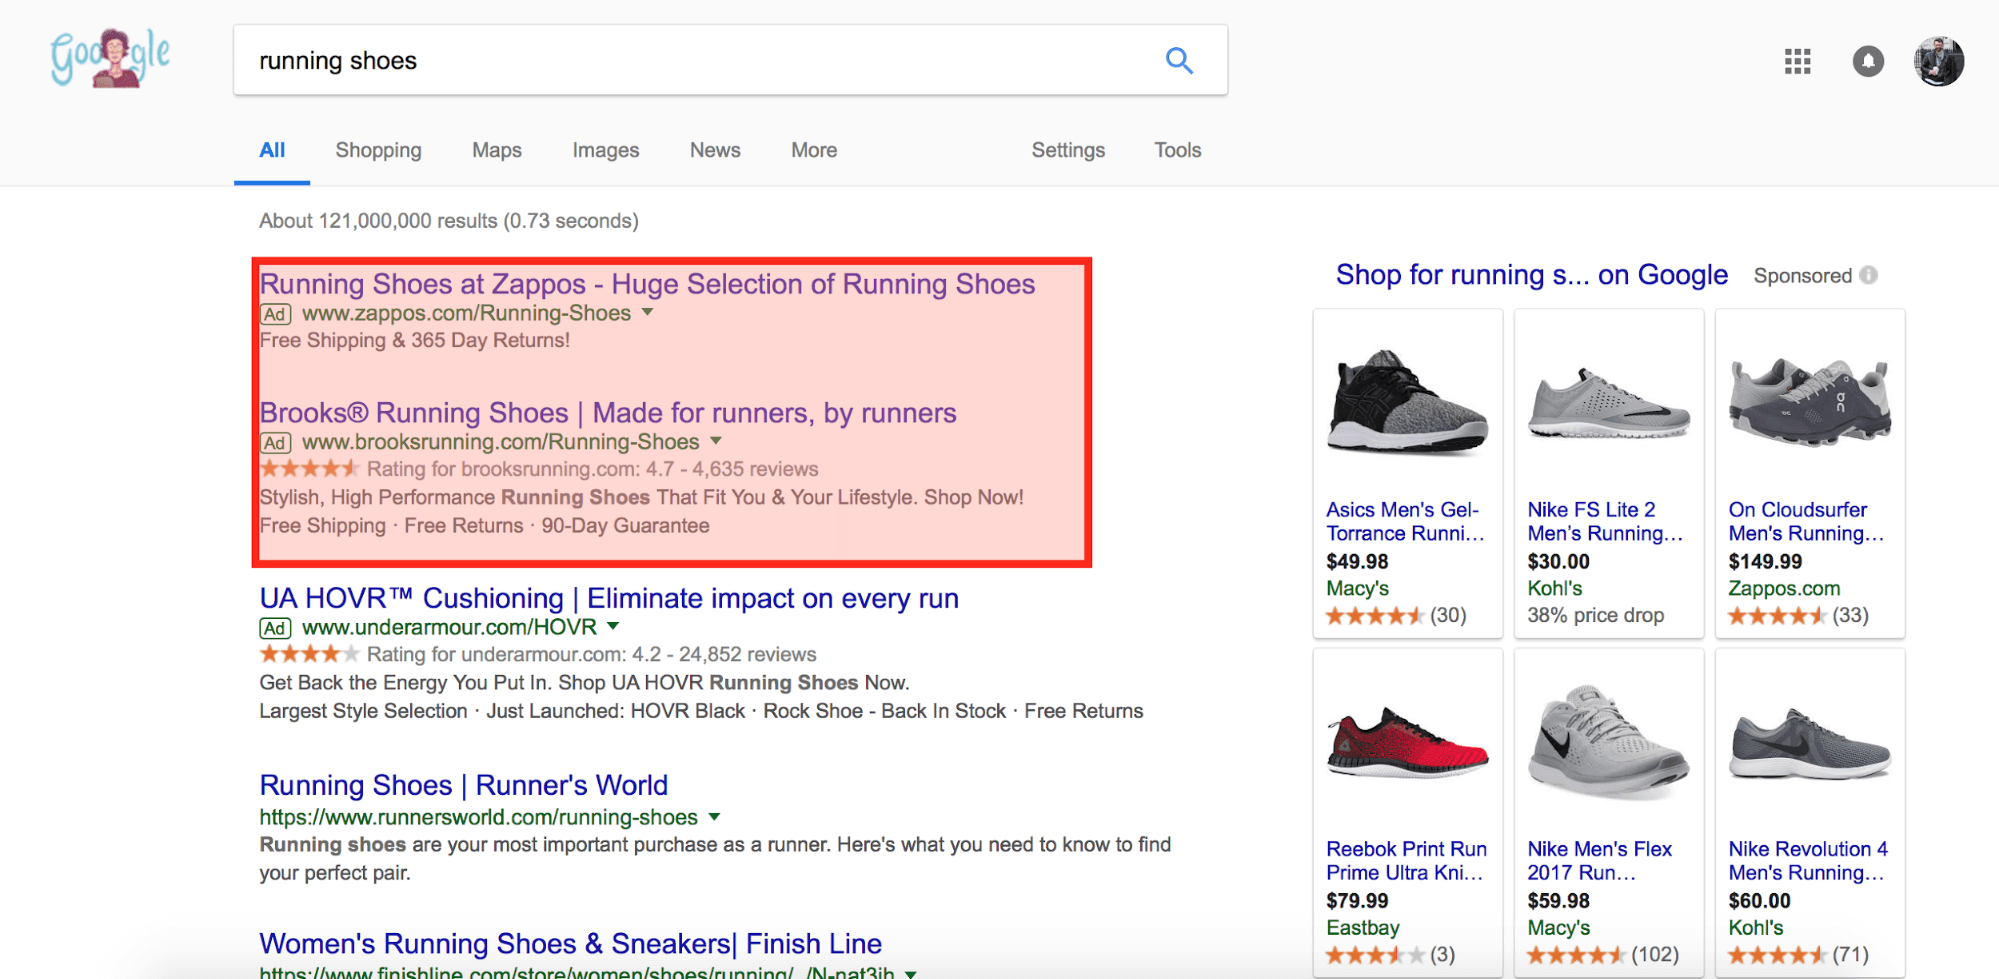 google search result with ads for running shoes